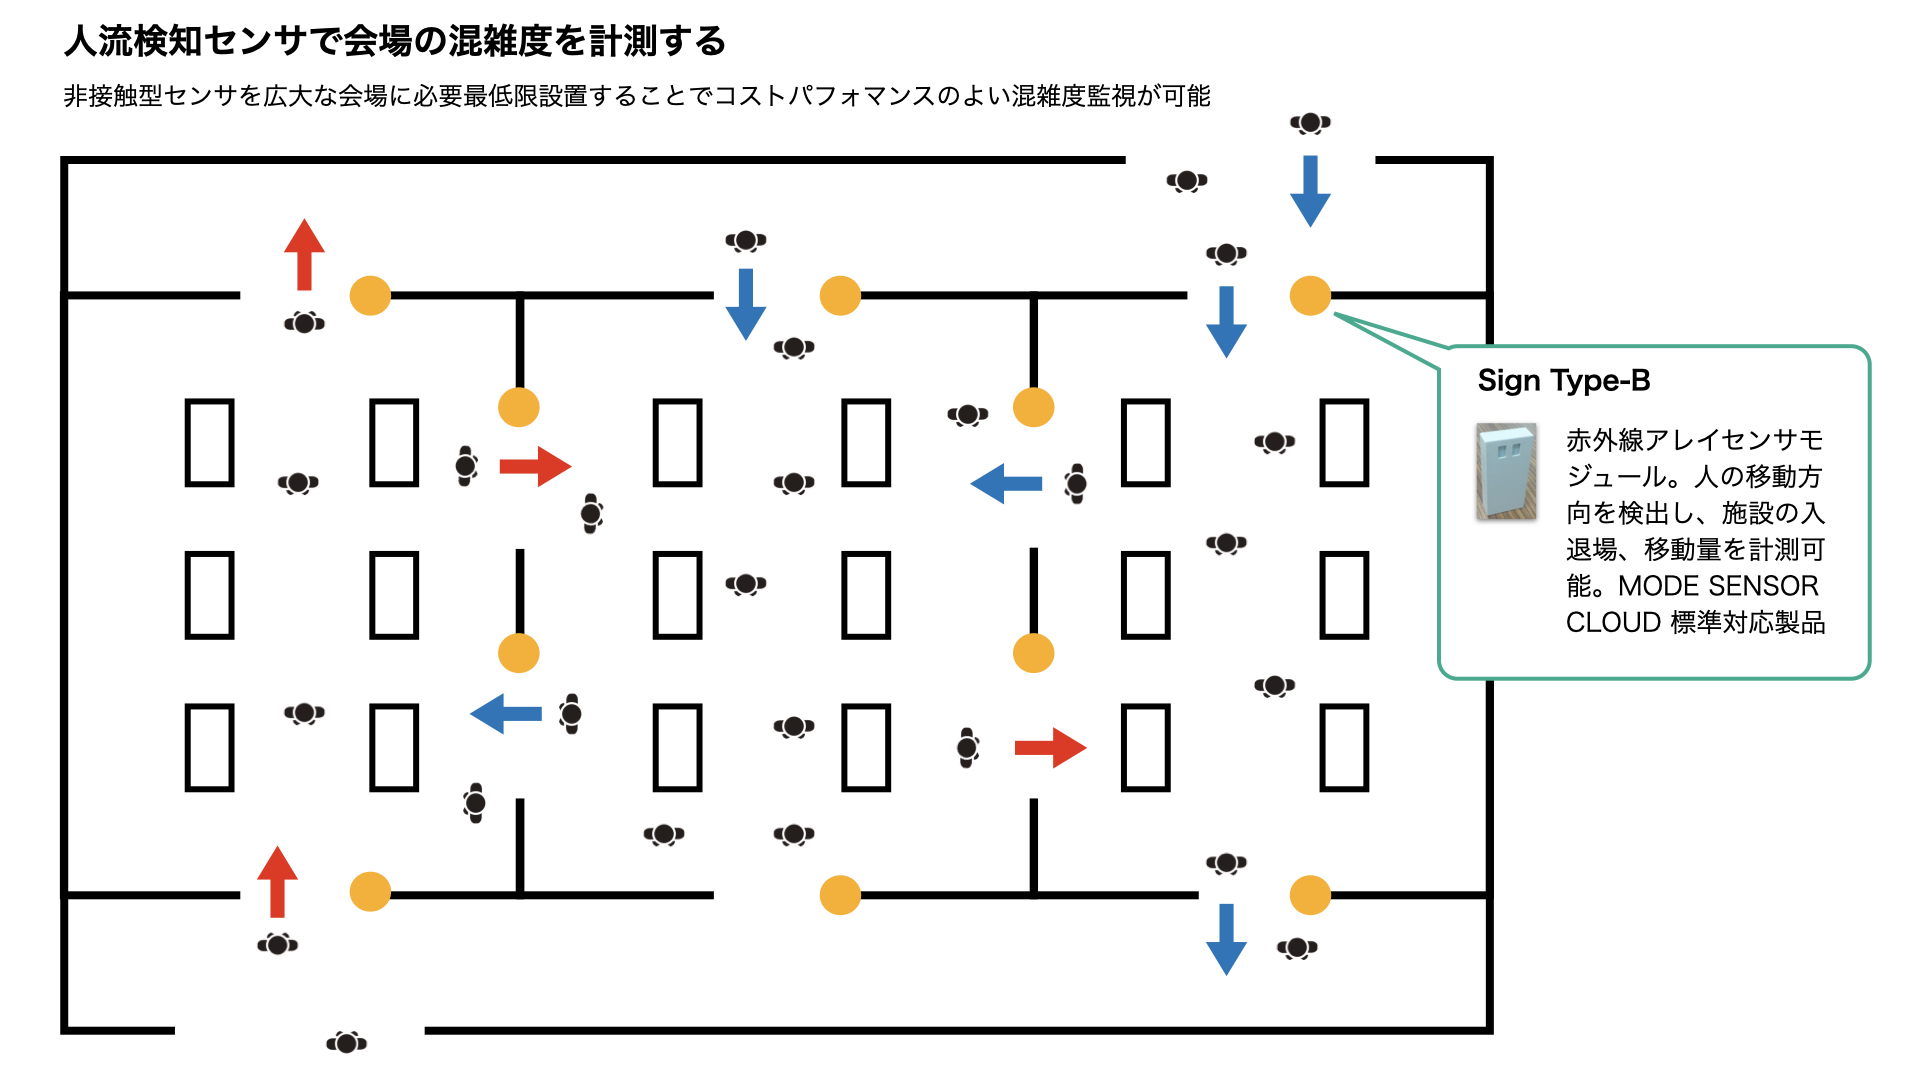 Conjestion-Detection-Type-B-EventSpace